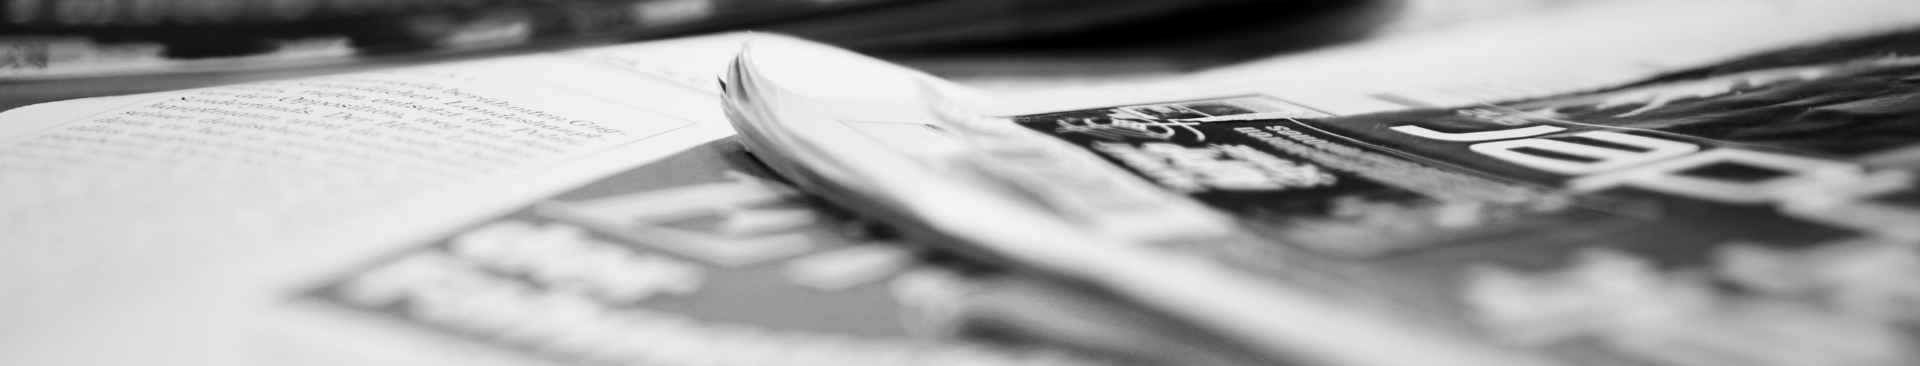 Black and white photo of newspapers